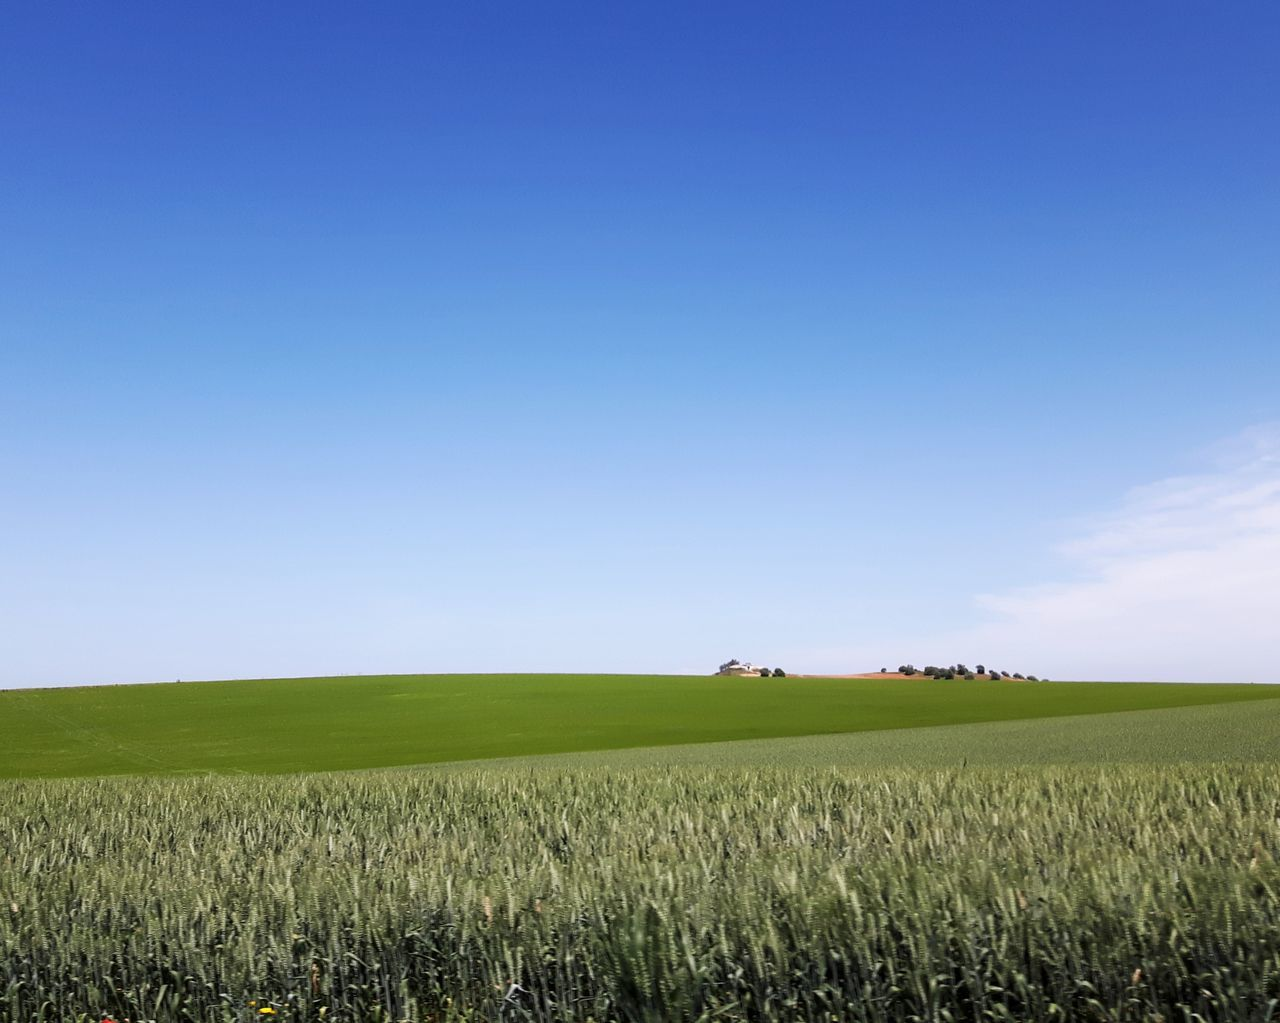 Agriculture Field Crop  Rural Scene Growth Nature Horizon Over Land Tranquil Scene Cereal Plant Sky Scenics Tranquility Environment Outdoors Minimalism Instagramer Umeugram Portugal Alentejo-Portugal